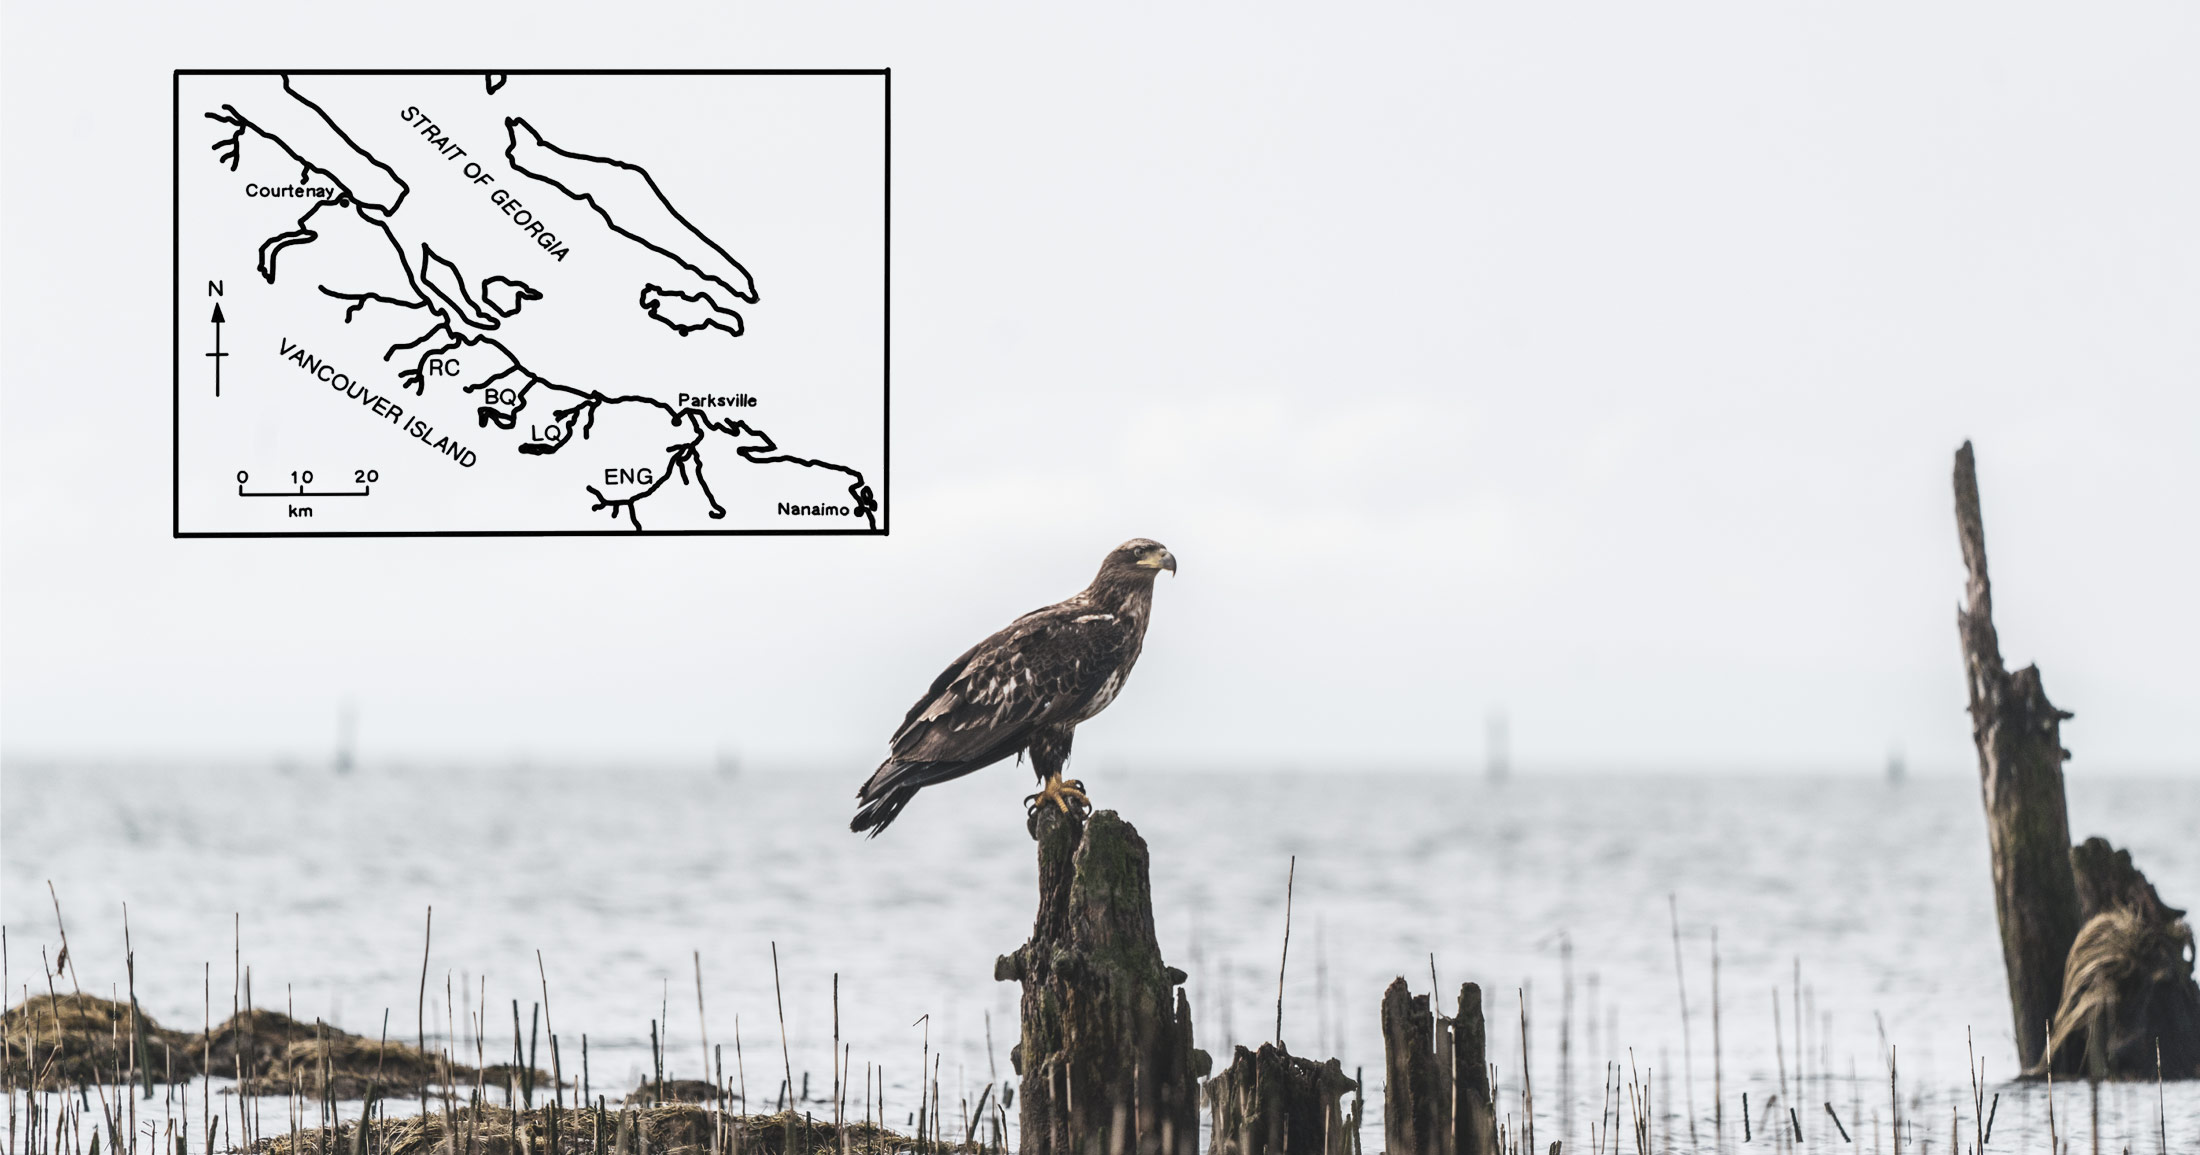 An eagle rests on a log with a map in the background.